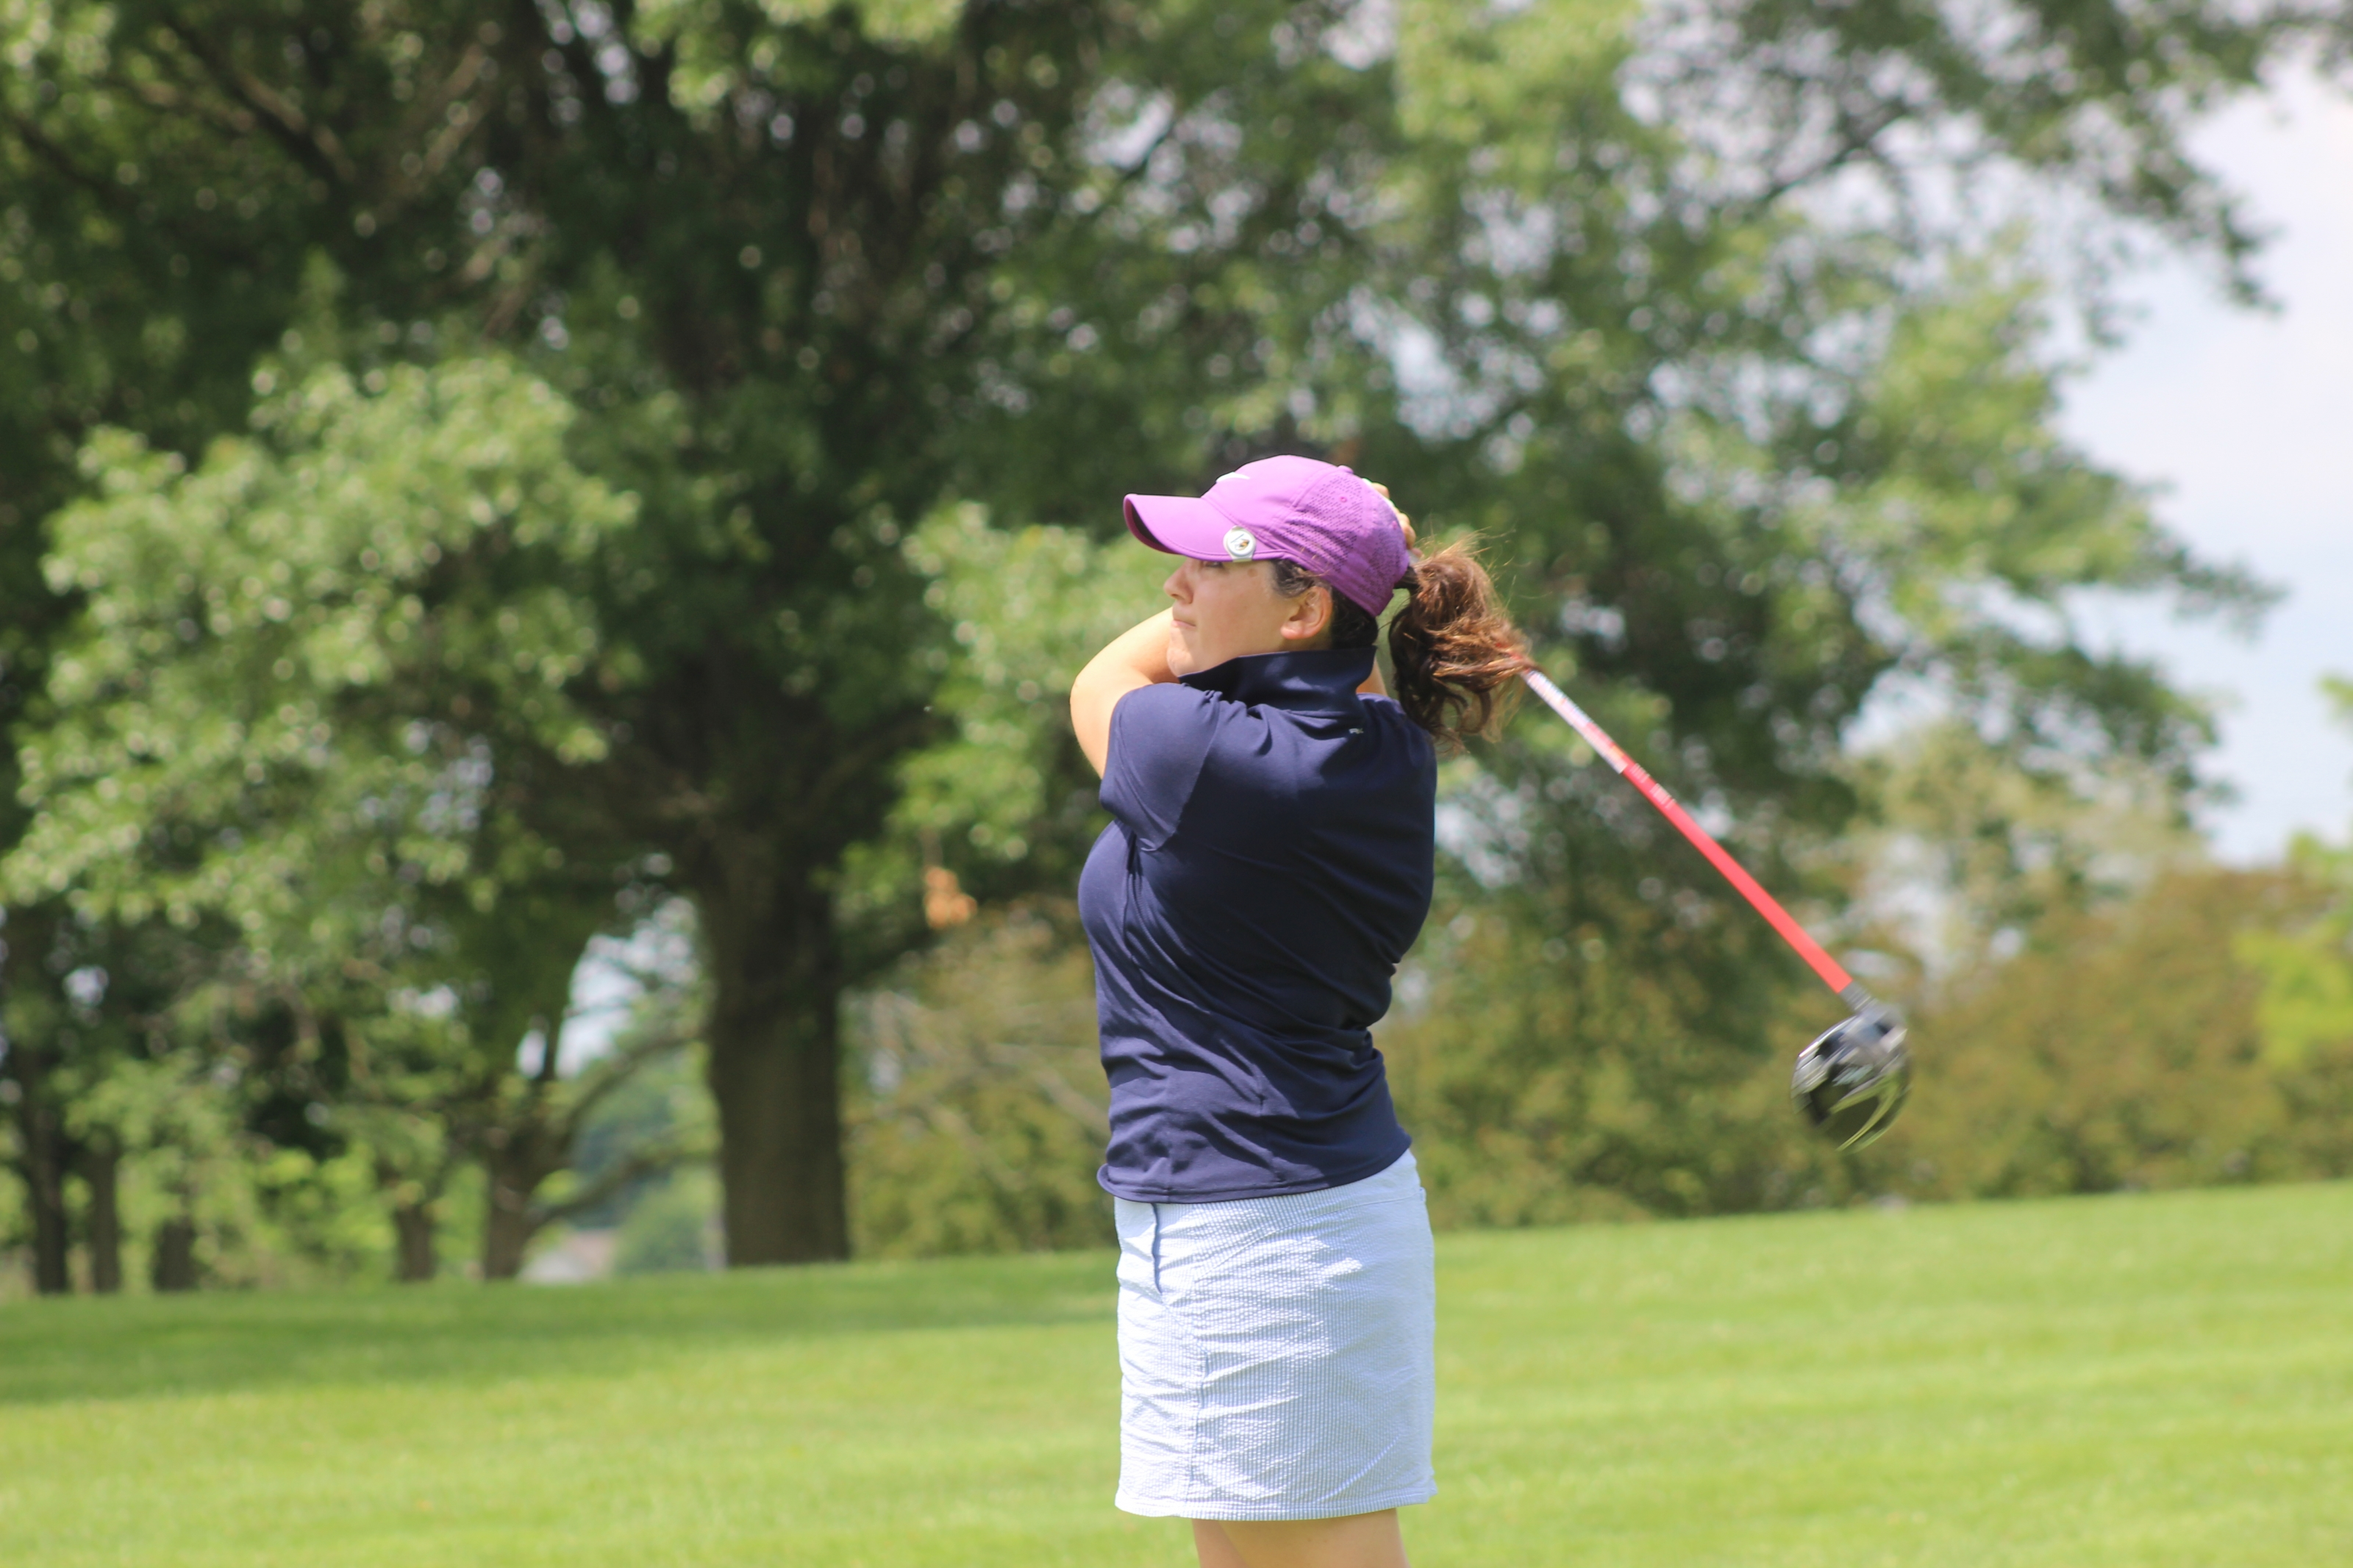 Potter-Bobb fires 3-under-par, 69 in round one of IWGA State Amateur